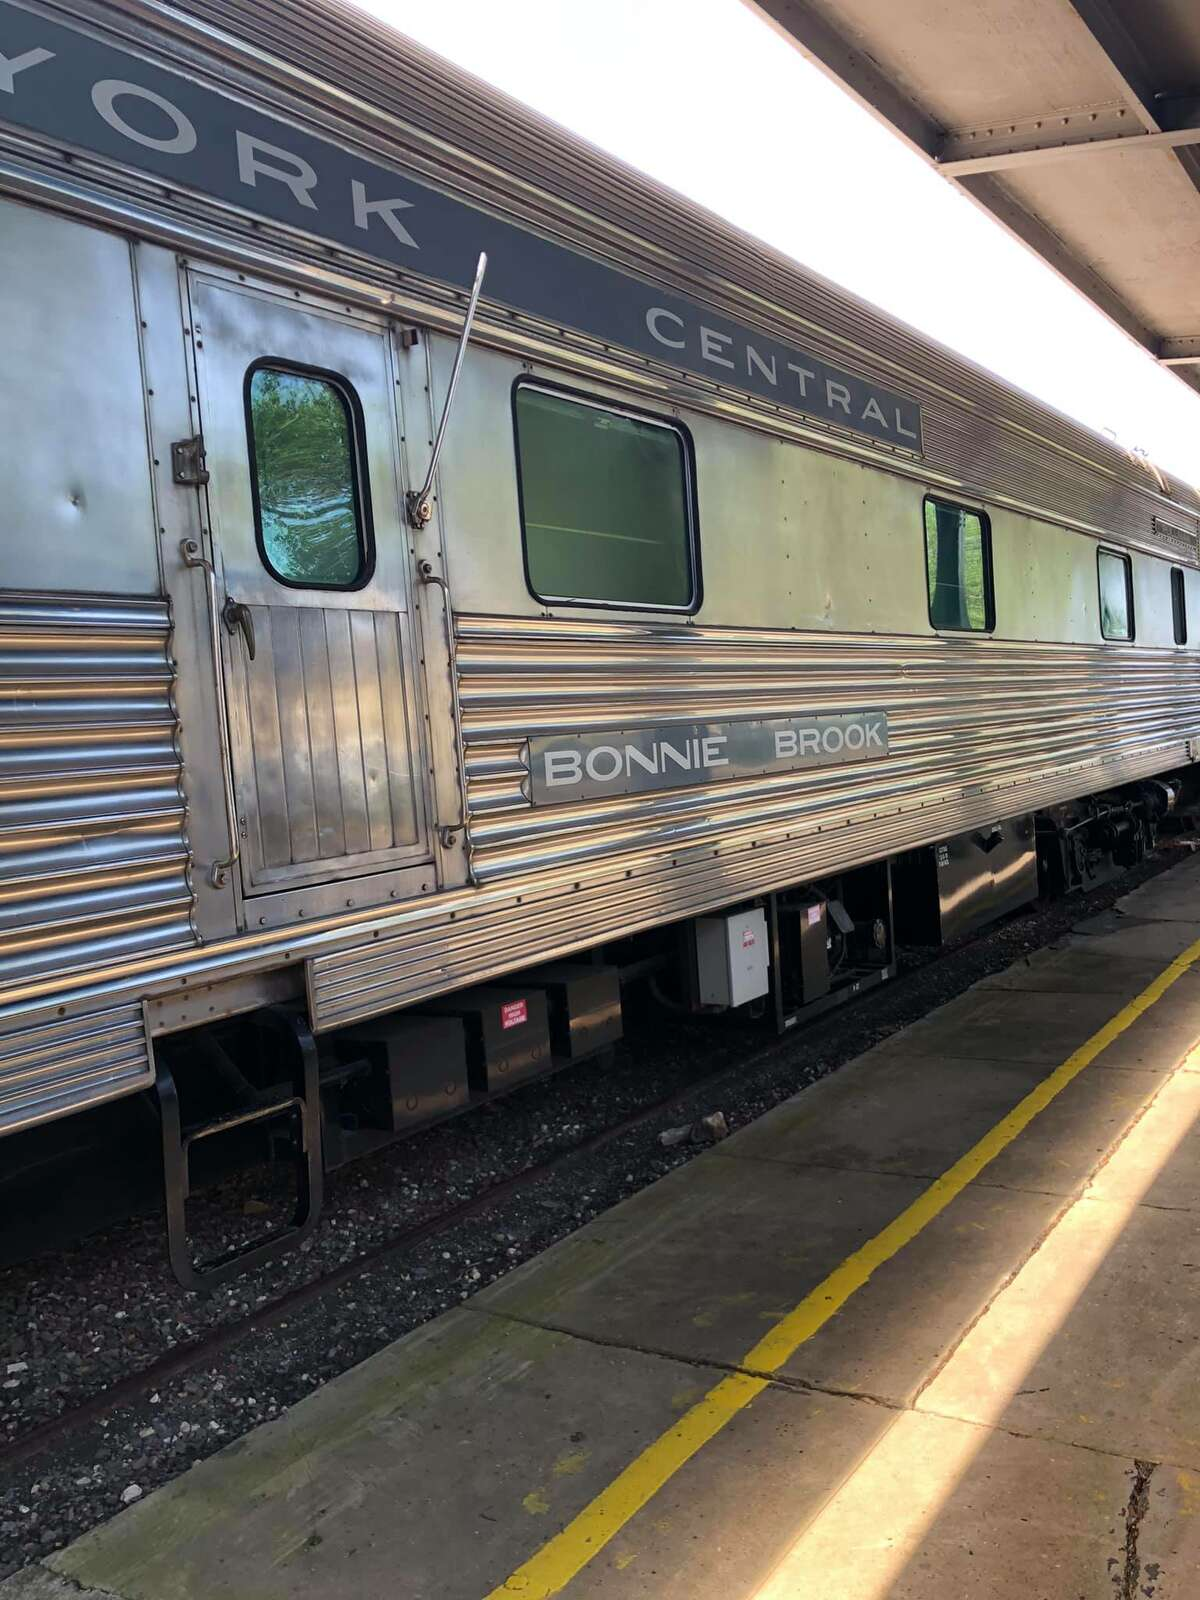 Built in 1949 for the New York Central Railroad, the Bonnie Brook served on the New York Central's New England States train between Boston and Chicago for many years.